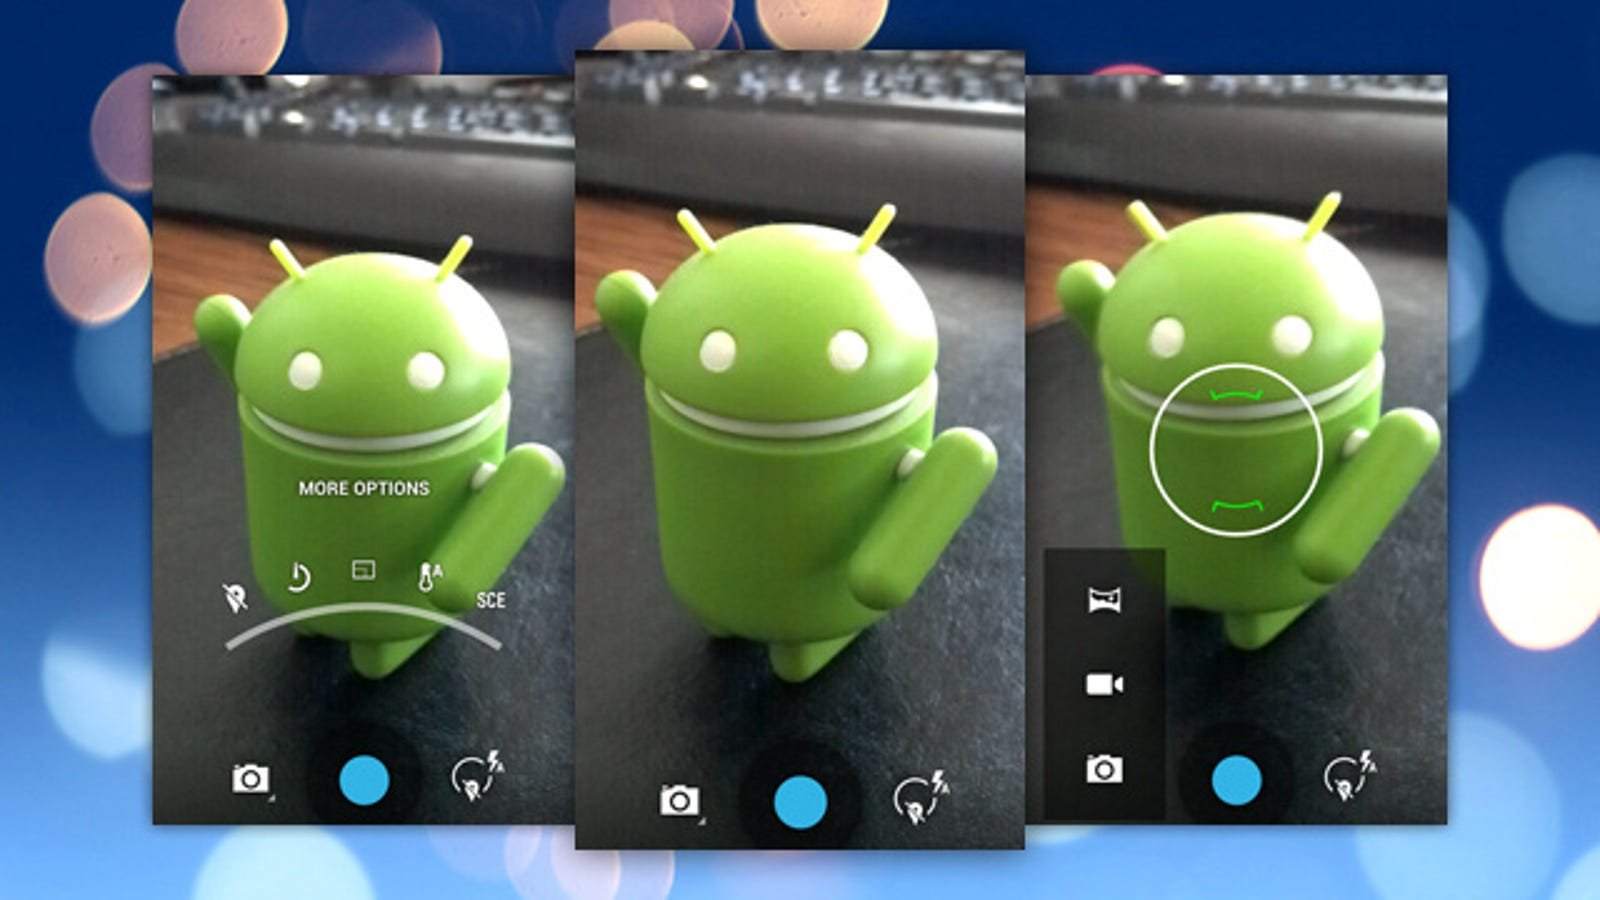 samsung s4 camera apk for s3